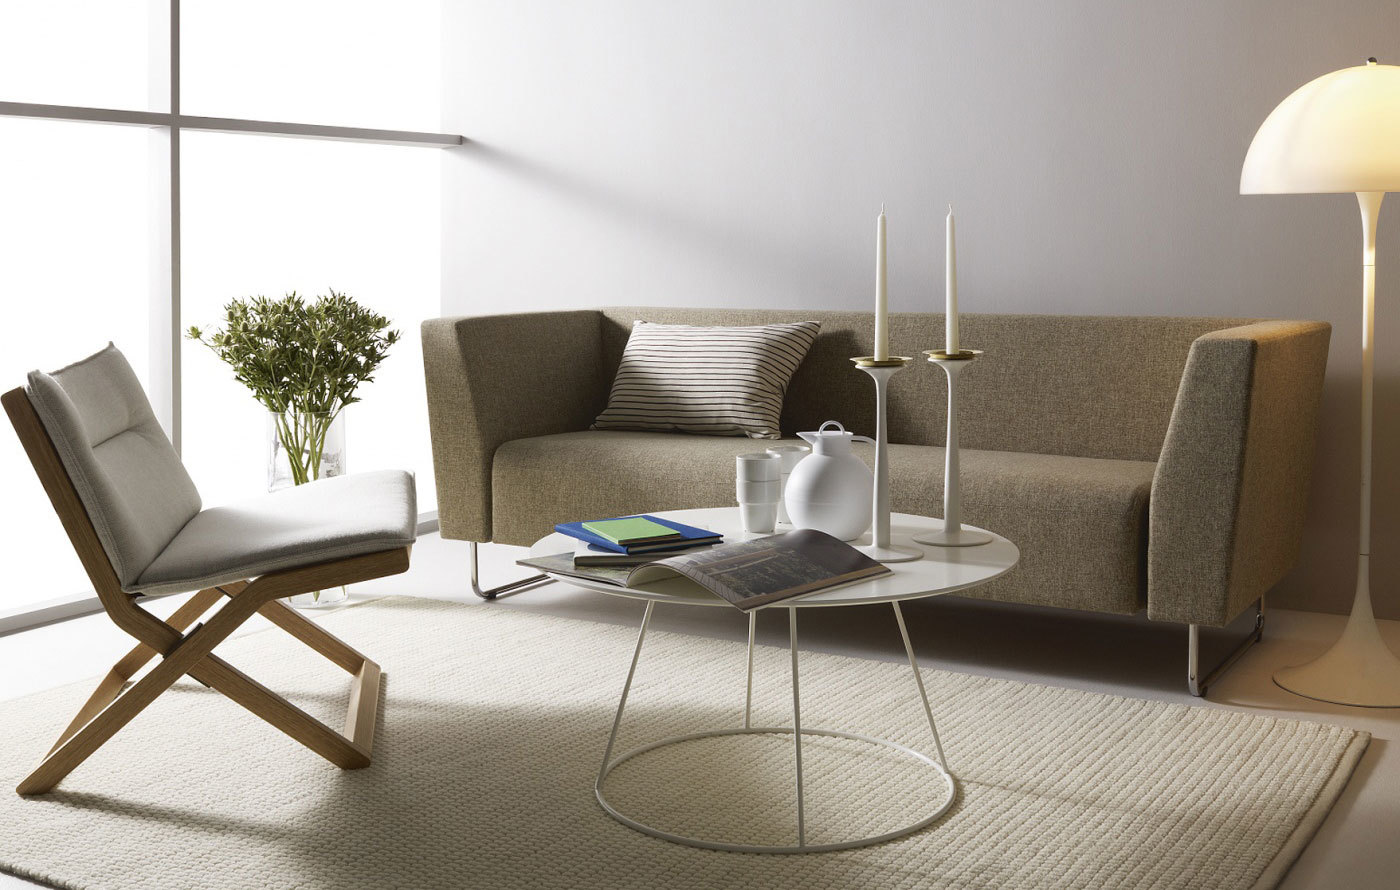 Cruiser chair, Breeze table and Gap sofa